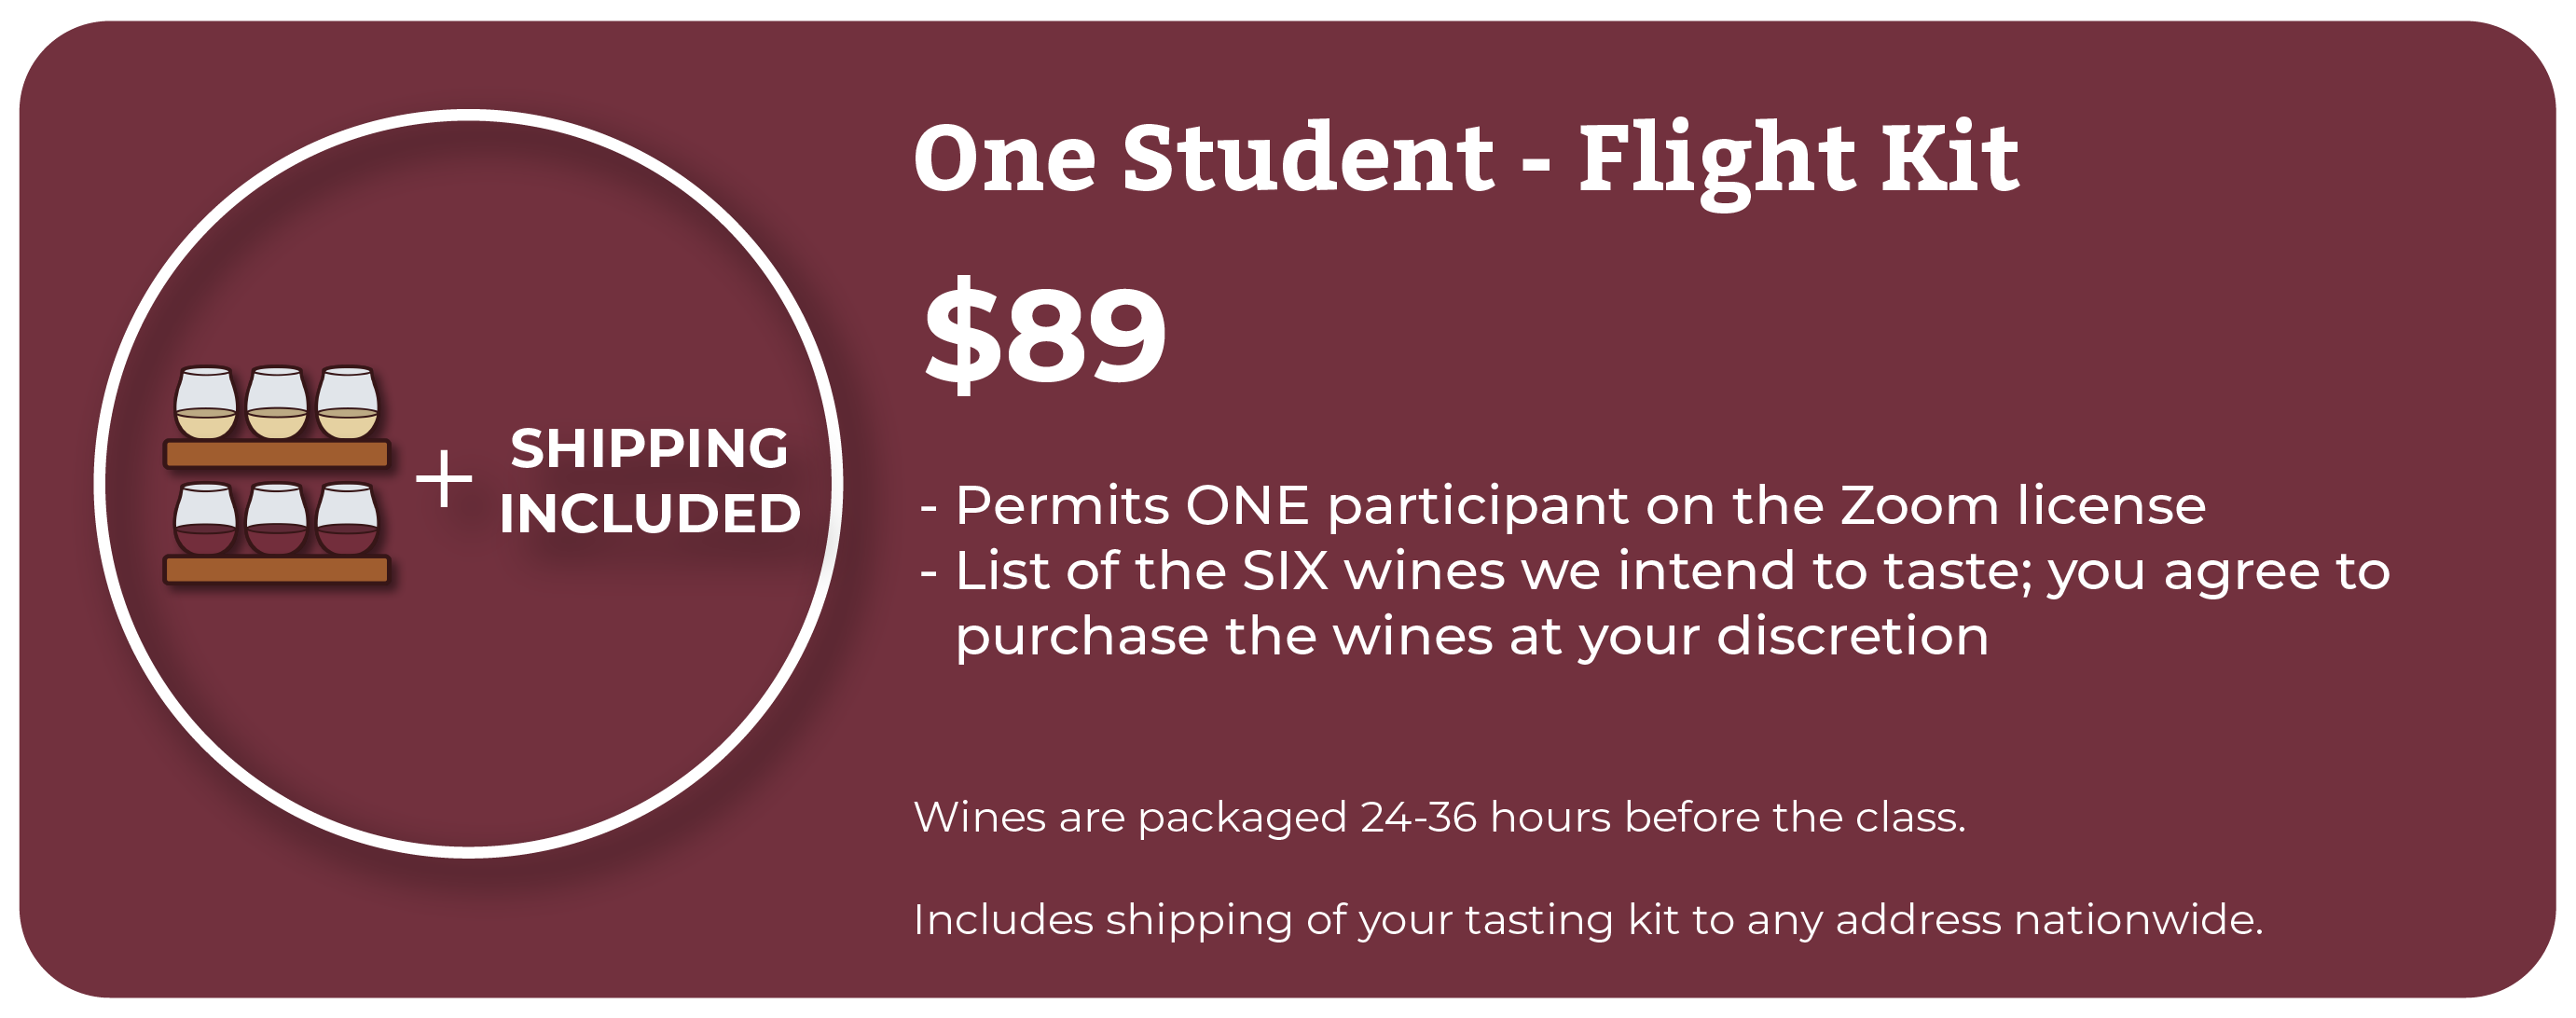 Flight Kit Wine Camp Prices  Online Wine Class Image at learnaboutwine.com